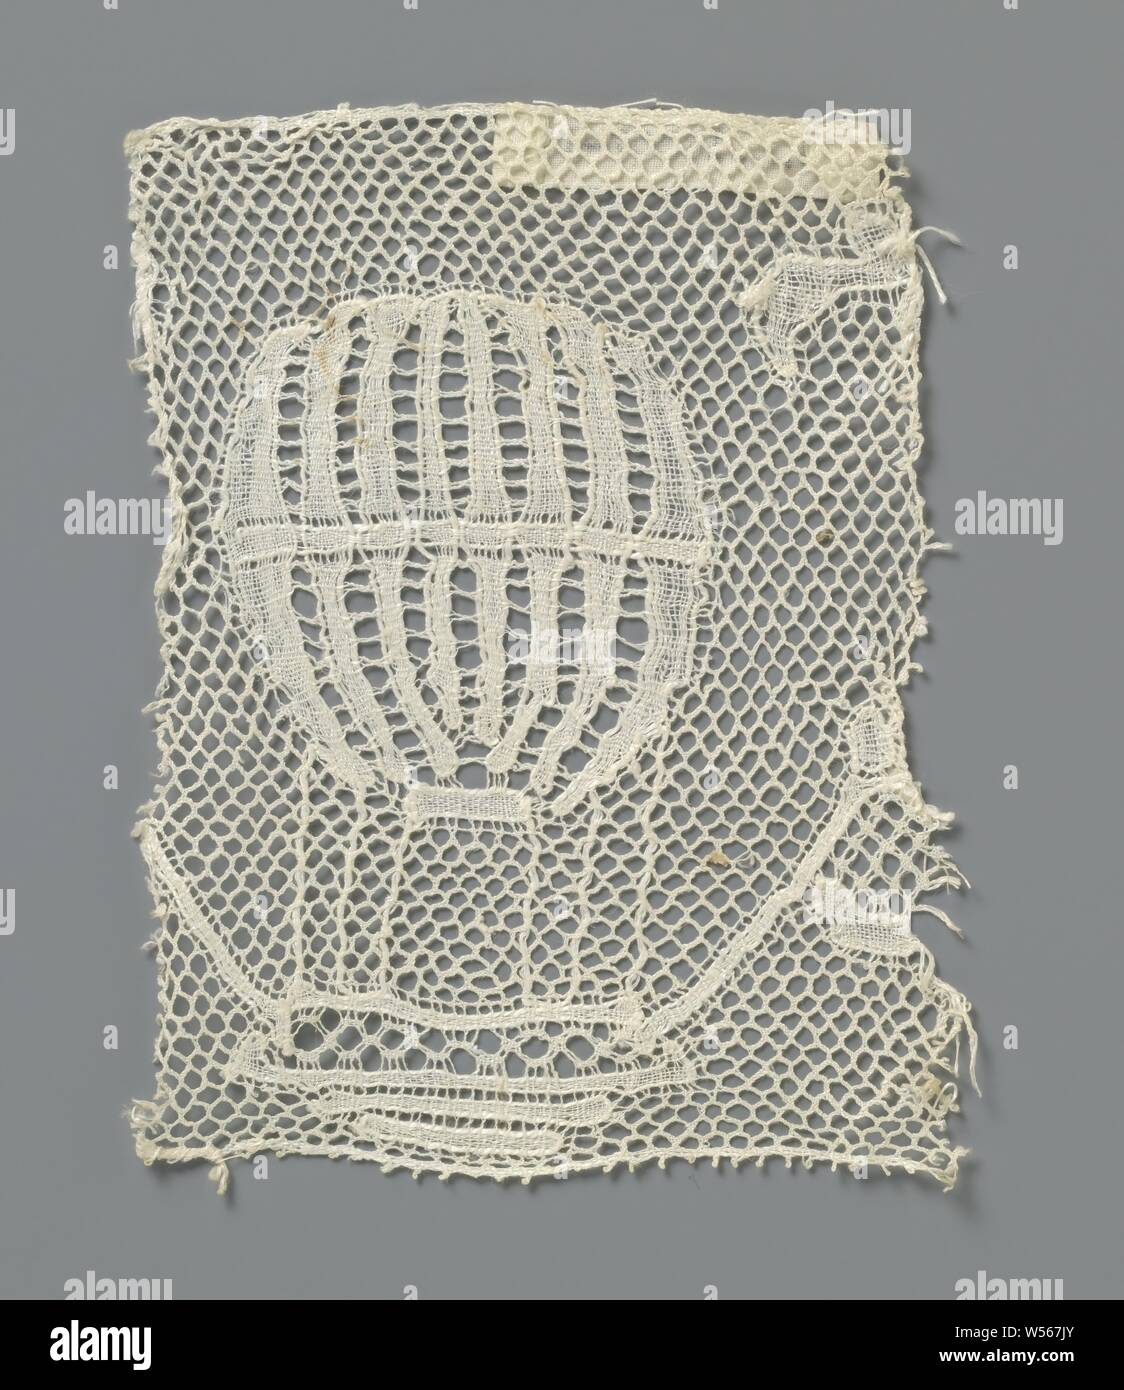 Strip of bobbin lace with hot air balloon, Strip of natural-colored bobbin lace: Antwerp side. On the short cut strip you can see a hot air balloon, which is originally part of a larger pattern that has been cut off. The balloon is made in a lattice soil, a Valenciennes soil. The motifs are made in linen with openwork edges and thicker, shiny contour threads. Standing pairs and single lace-hole strokes between the closed stripes in the balloon create a decorative effect in the open-worked stripes. In the upper part of the basket a decorative ground is used as an ornamental ground (with Stock Photo